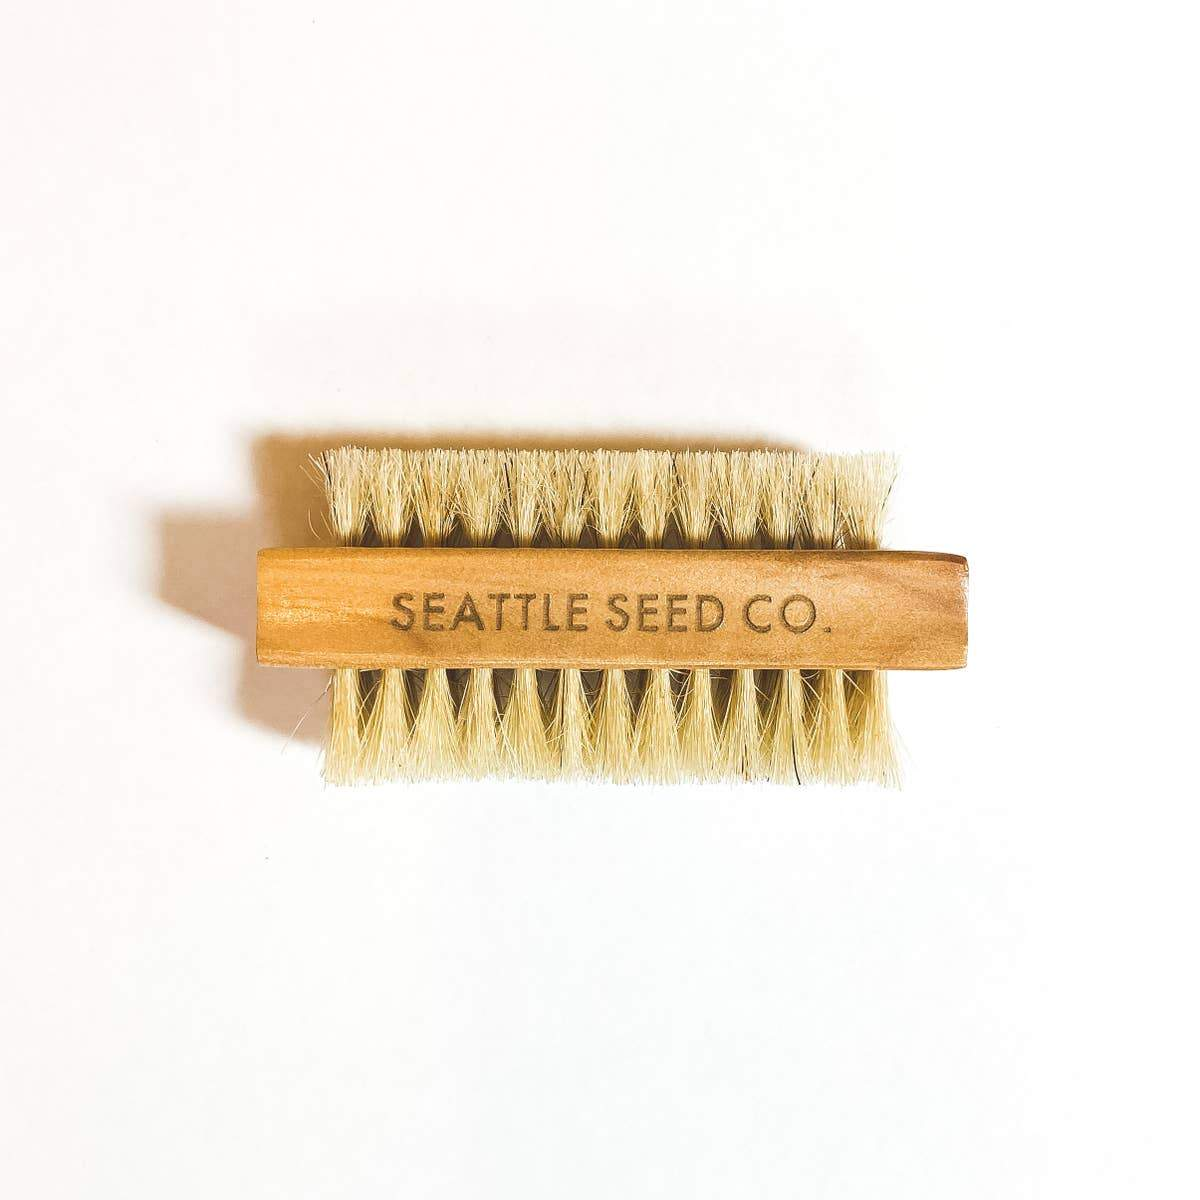 Gardeners Nail Brush - Seattle Seed Co -Freehand Market